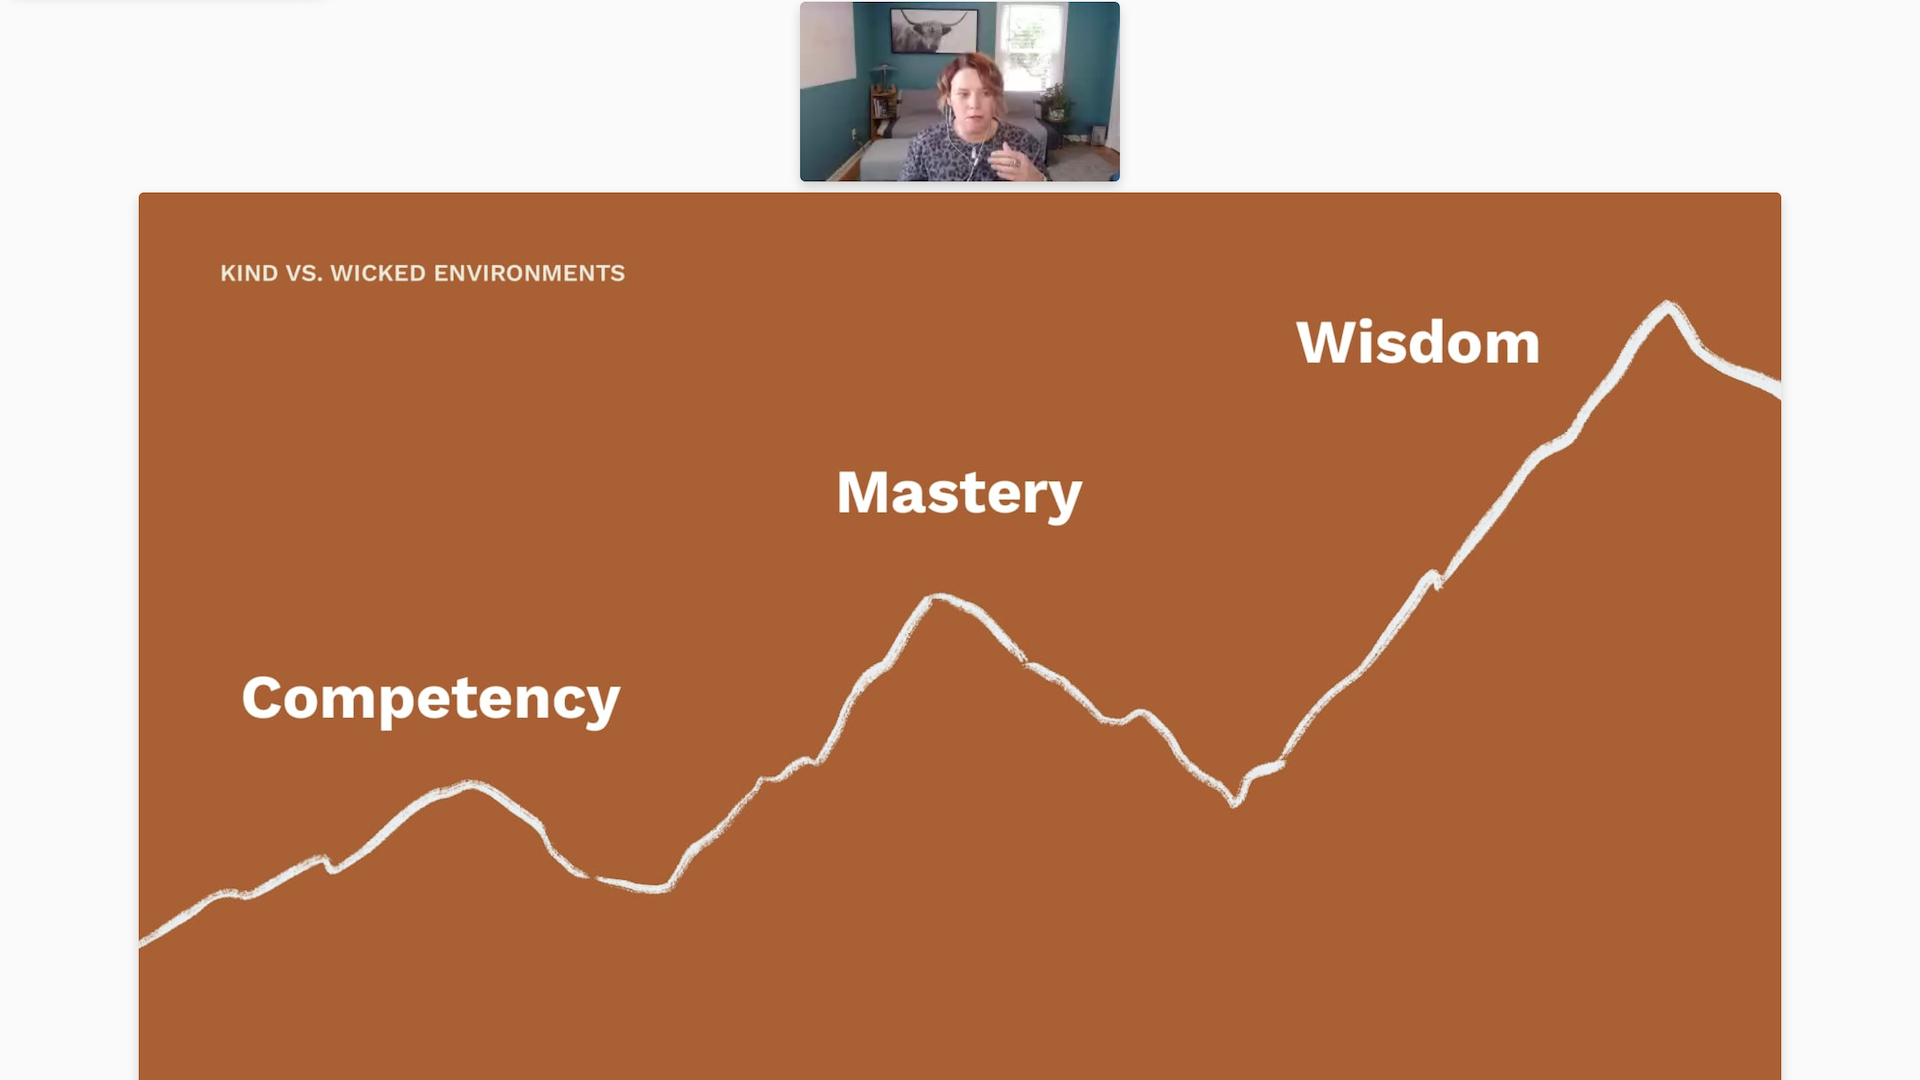 Karen VanHouten appears on video over a slide with the outline of a mountain. Text: Competency, Mastery, Wisdom.